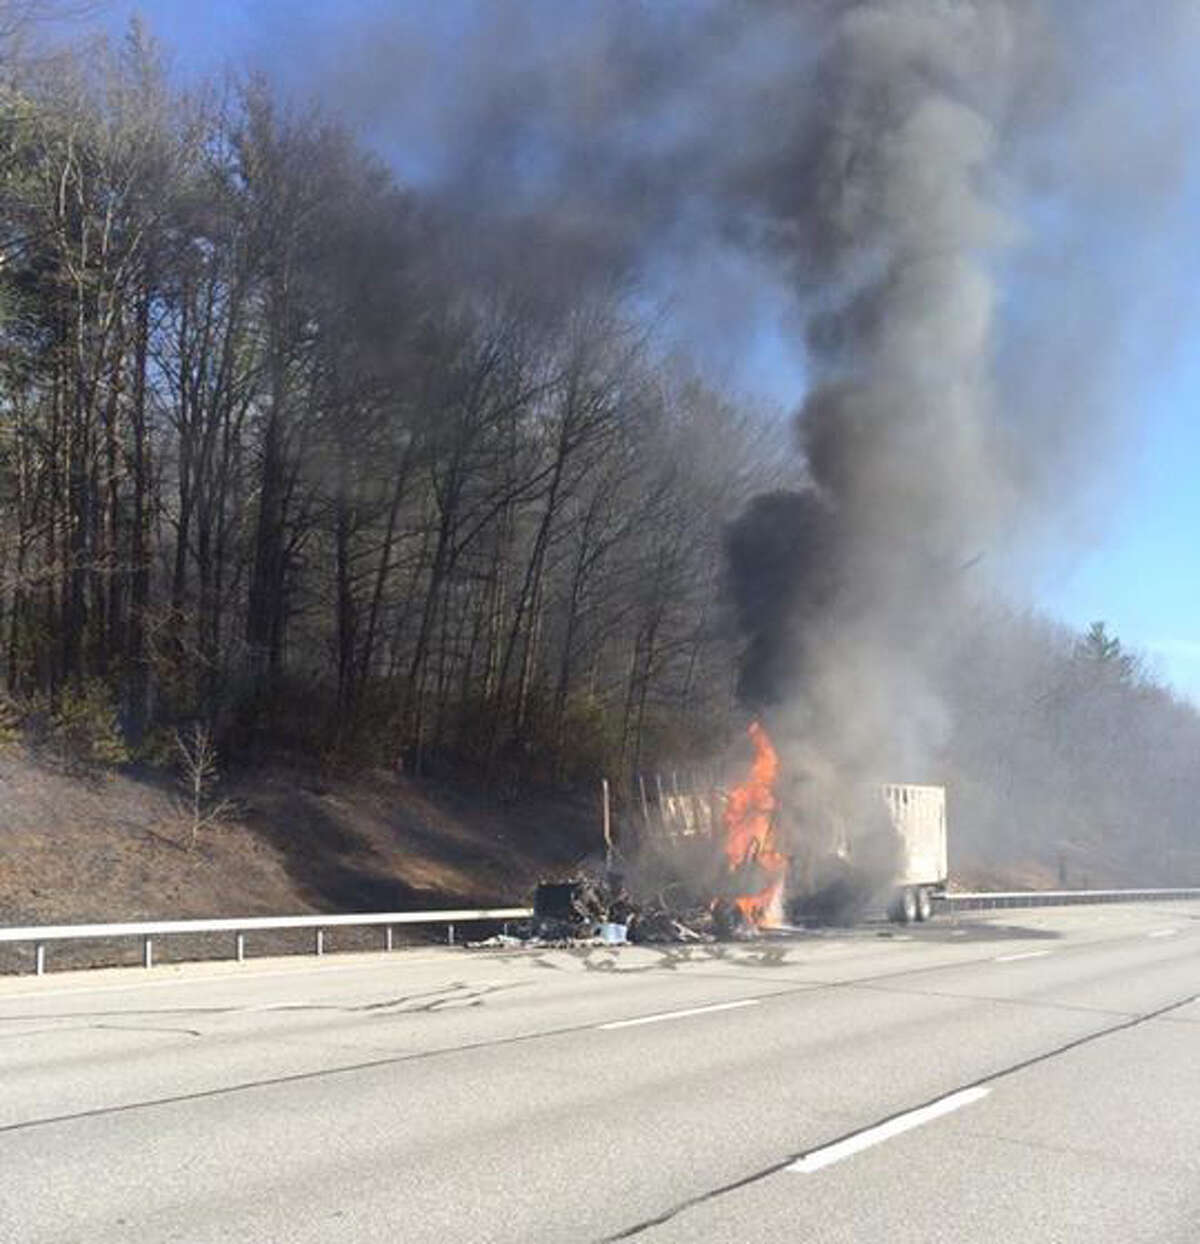 A tractor trailer burns on the northbound side of the Northway near Exit 11. (Photo: Saratoga County Office of Emergency Services)